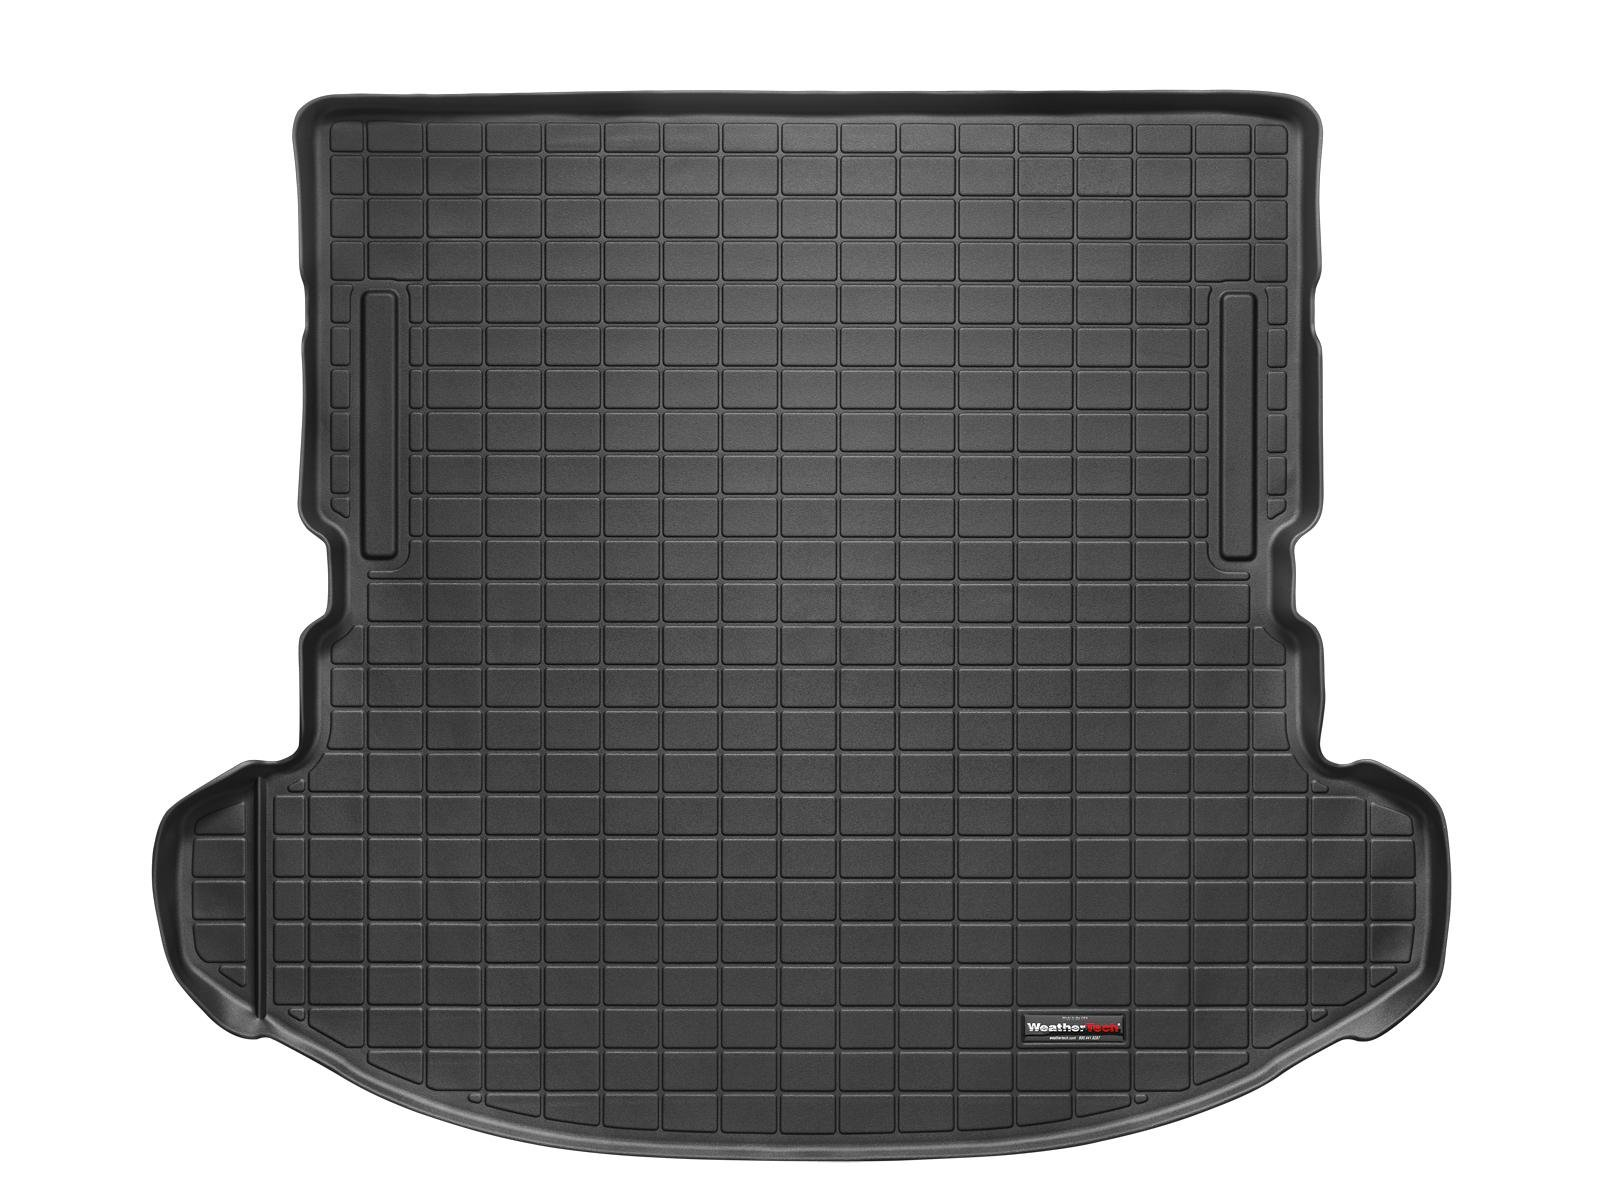 WeatherTech Custom Fit Cargo Liners for Mazda CX-9, Black